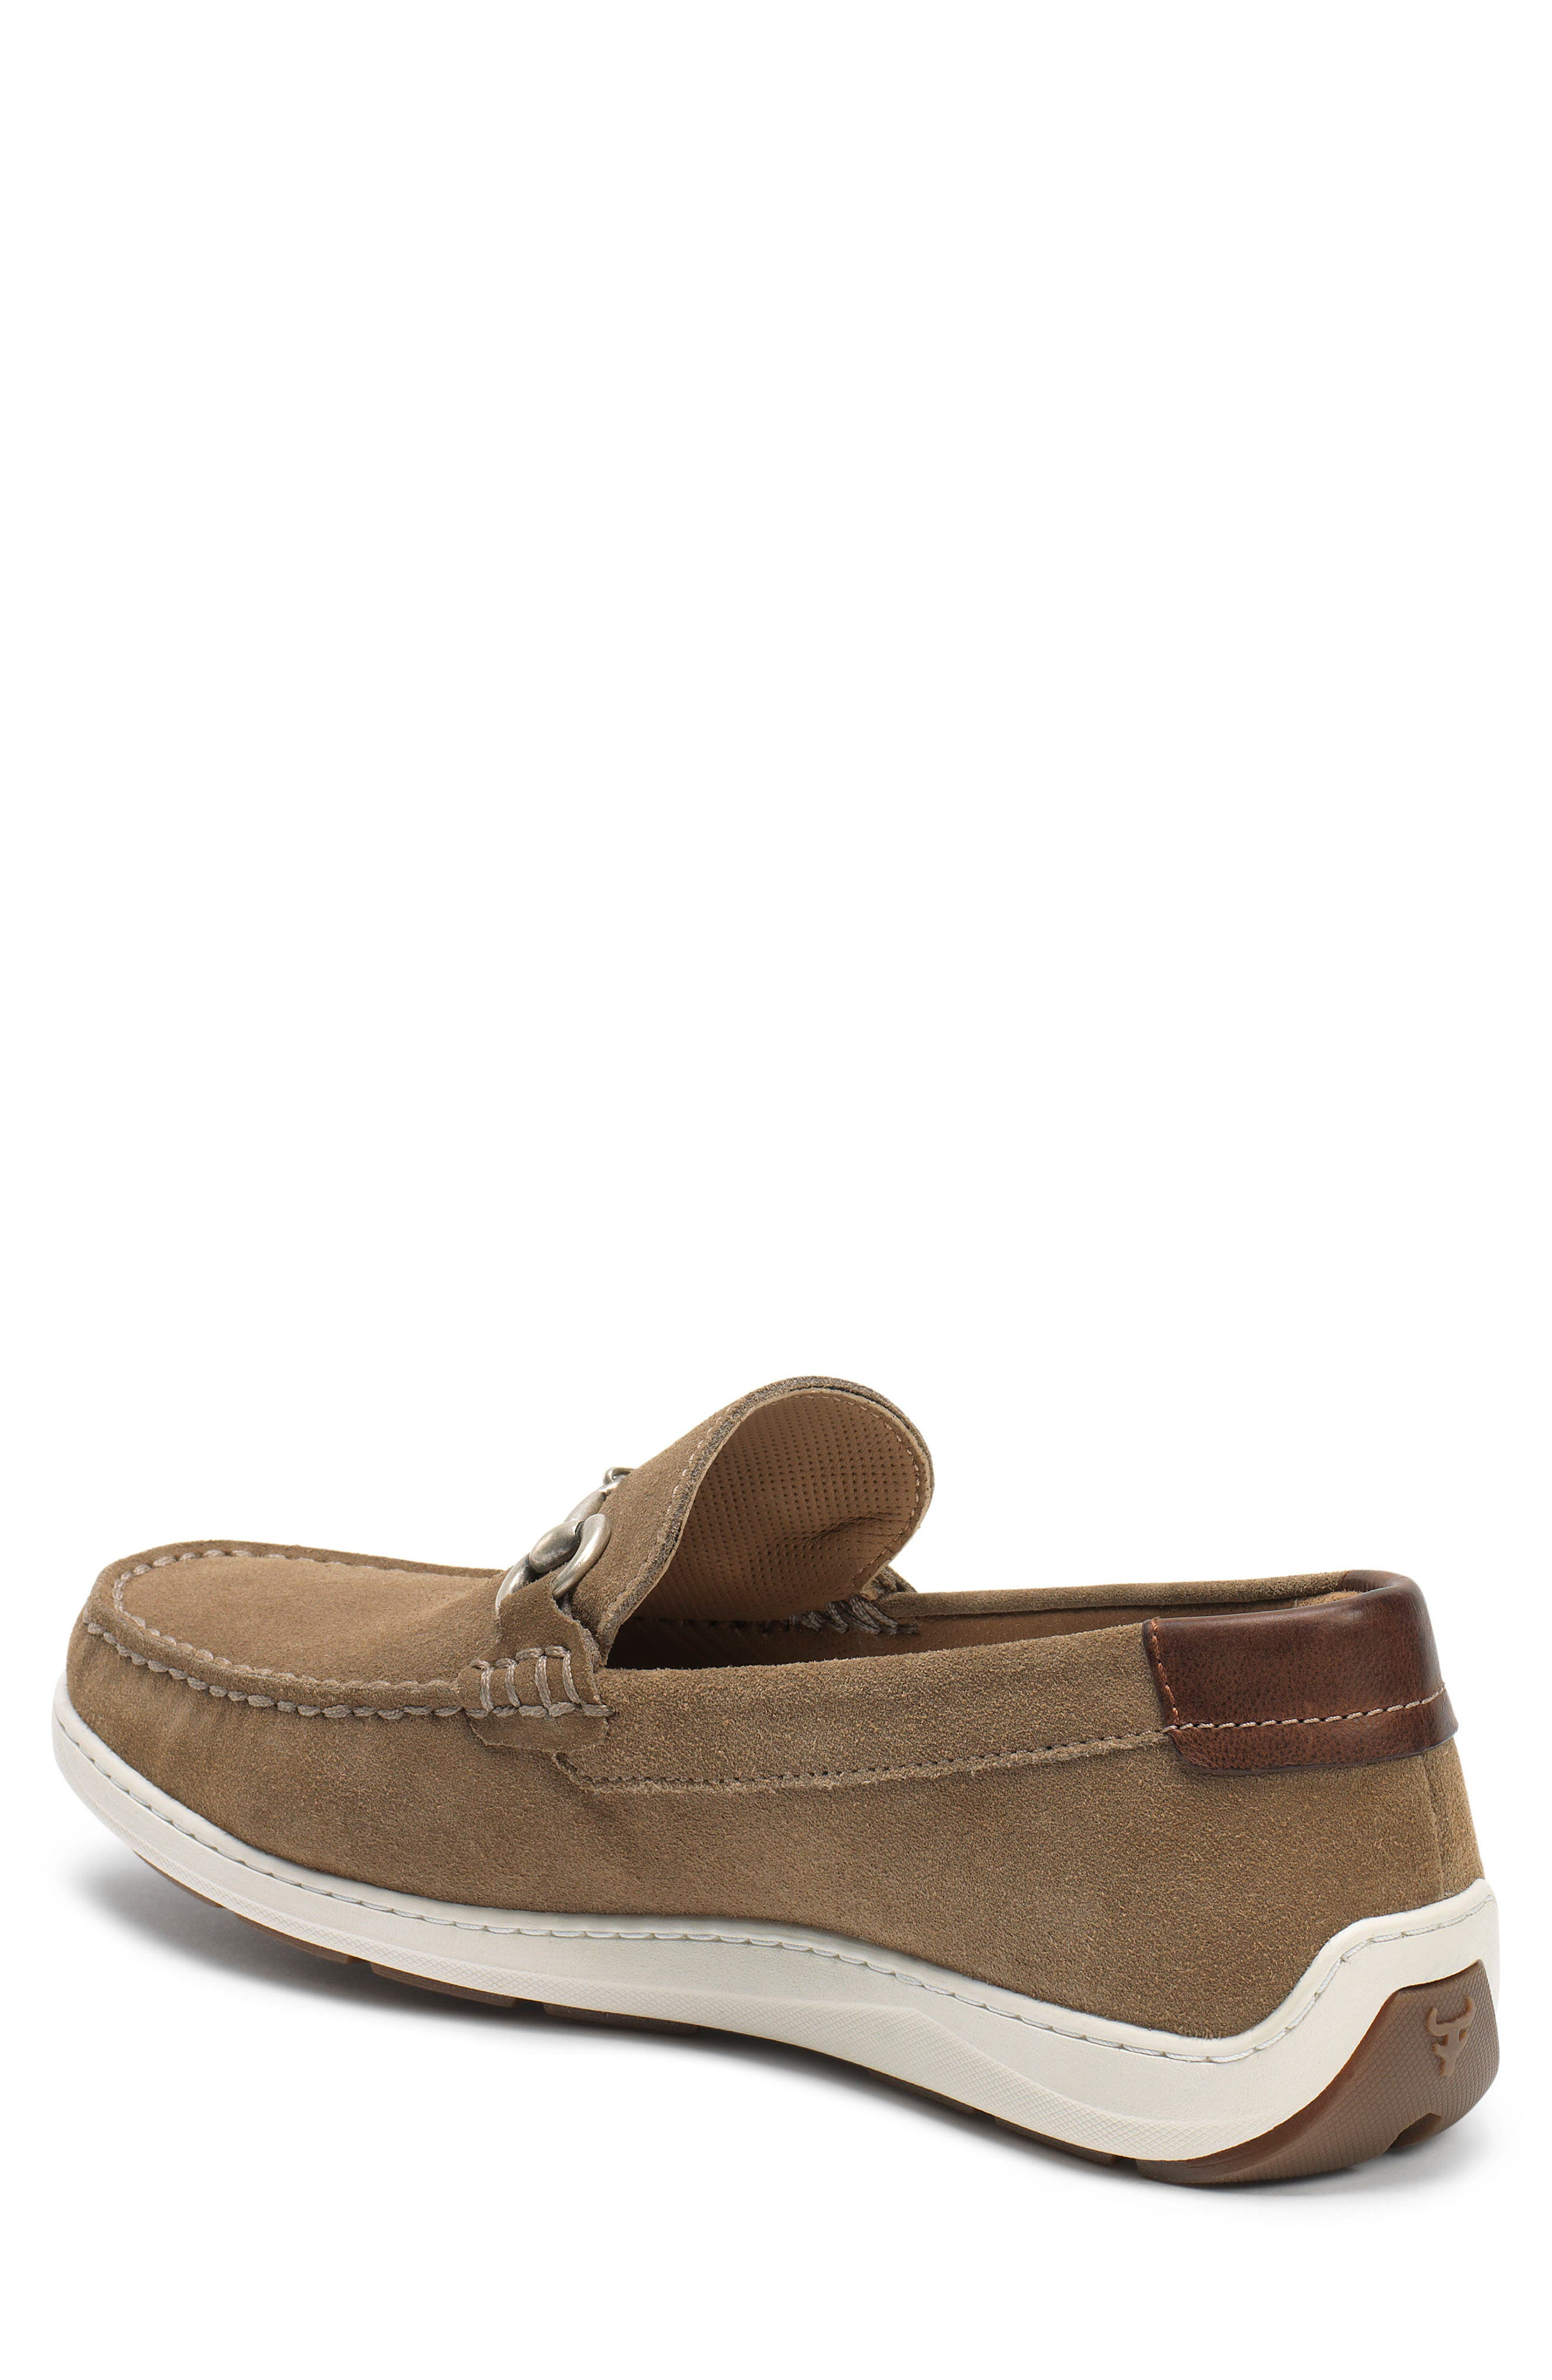 Stalworth Bit Loafer,                             Alternate thumbnail 2, color,                             Taupe Leather